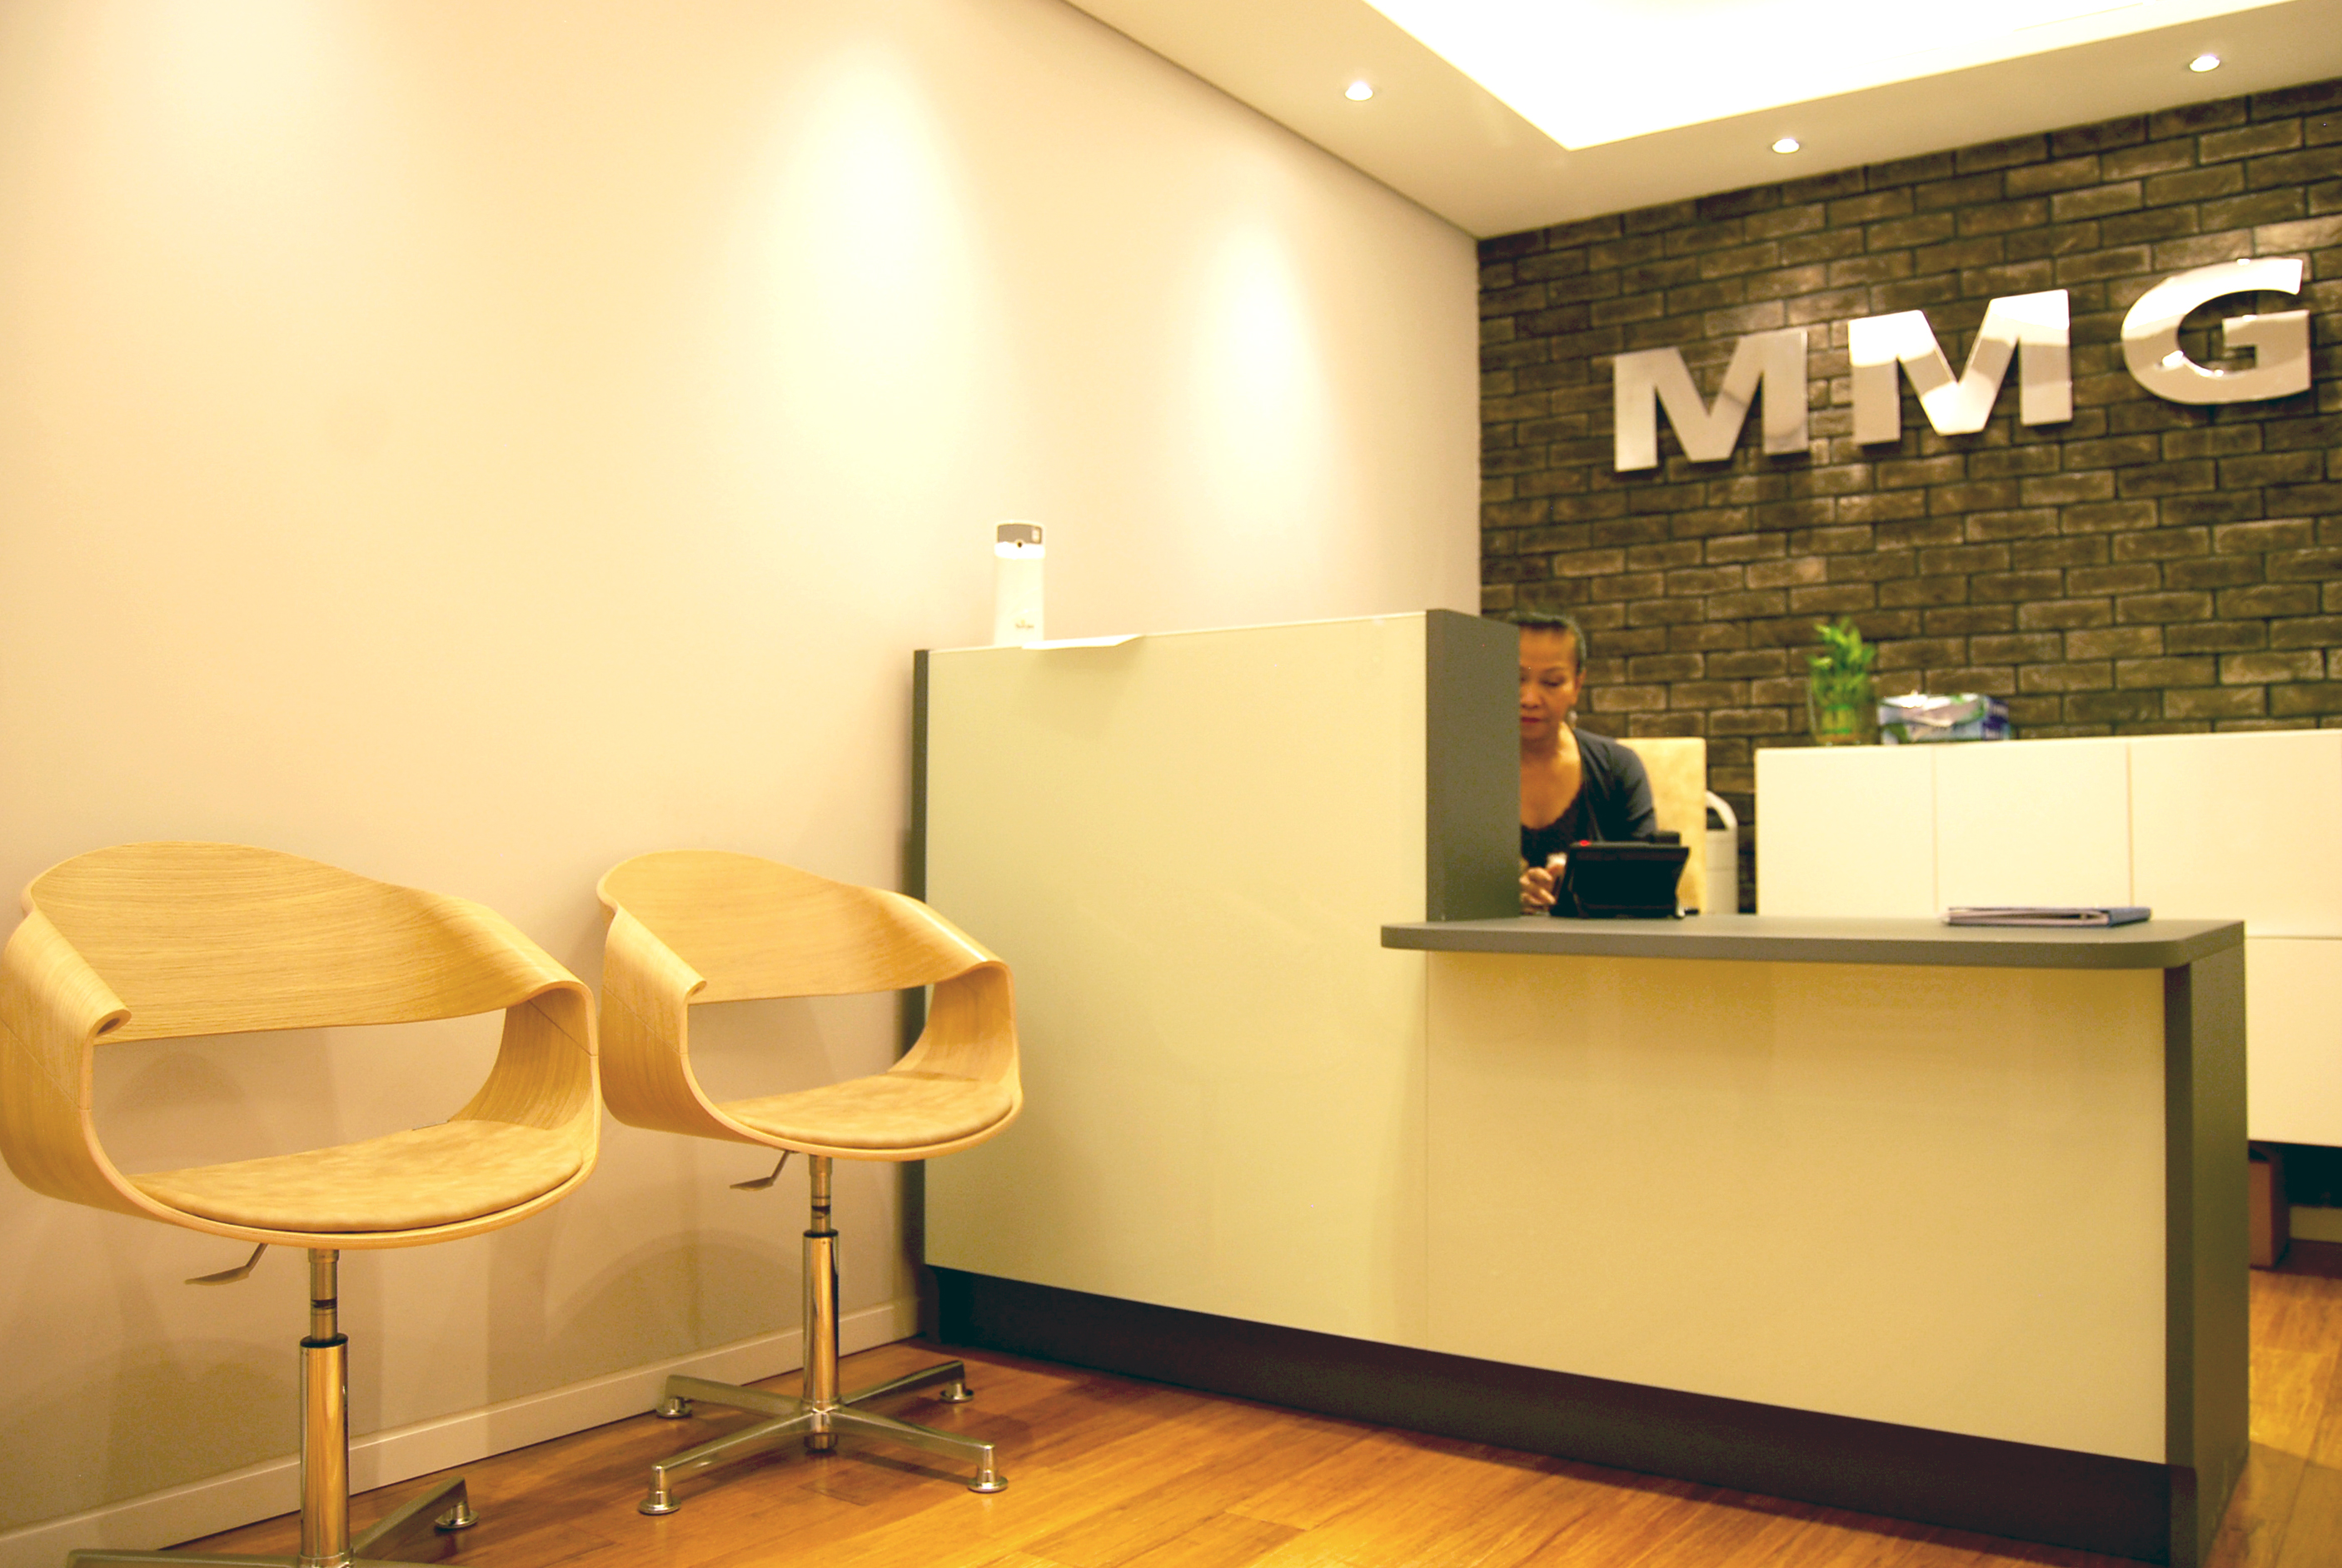 MMG OFFICE